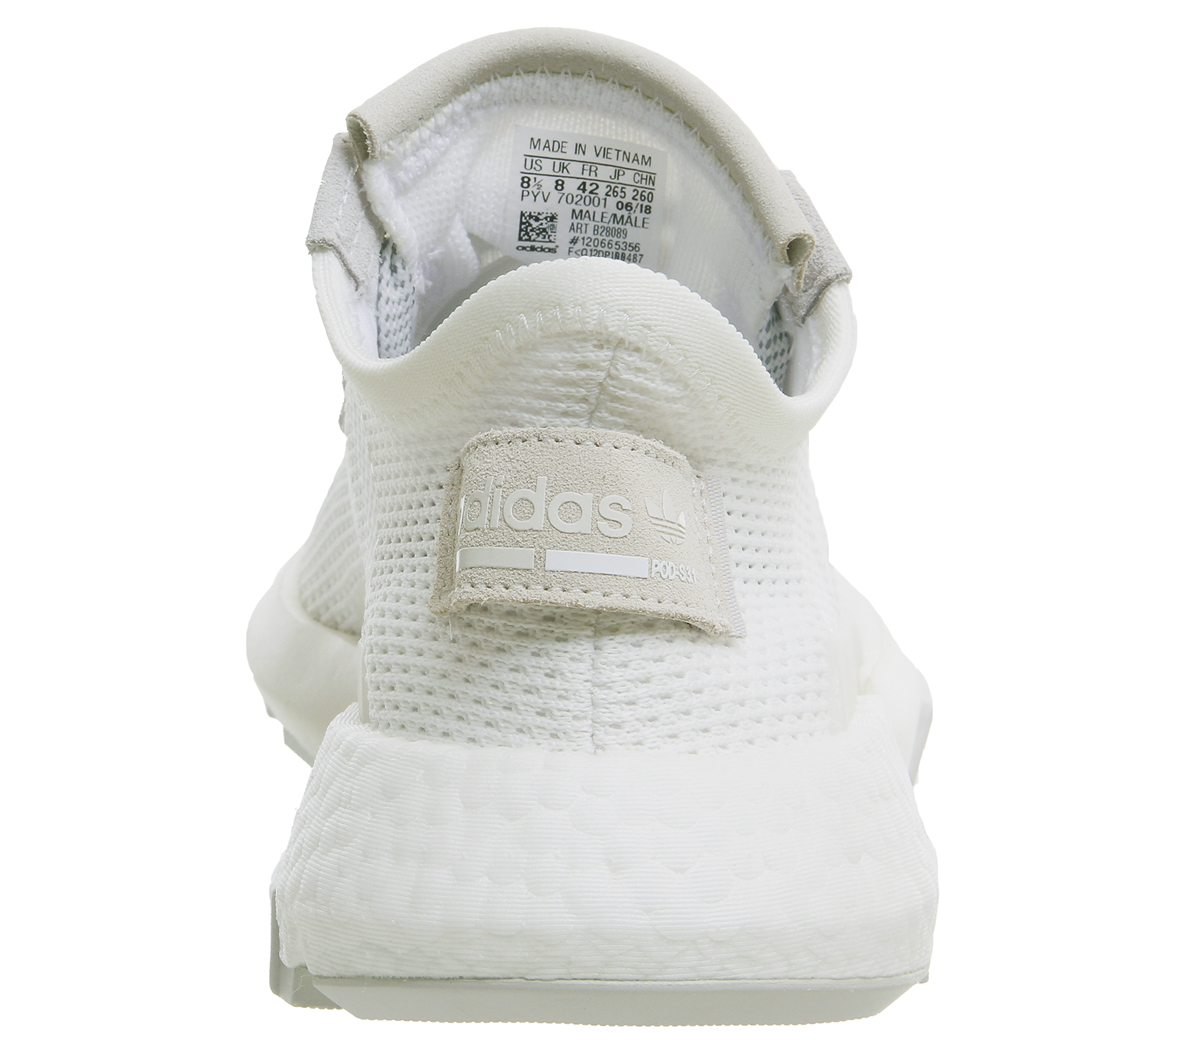 4ac99fcd587ae Sentinel Adidas Pod S3.1 Trainers White White Grey Trainers Shoes